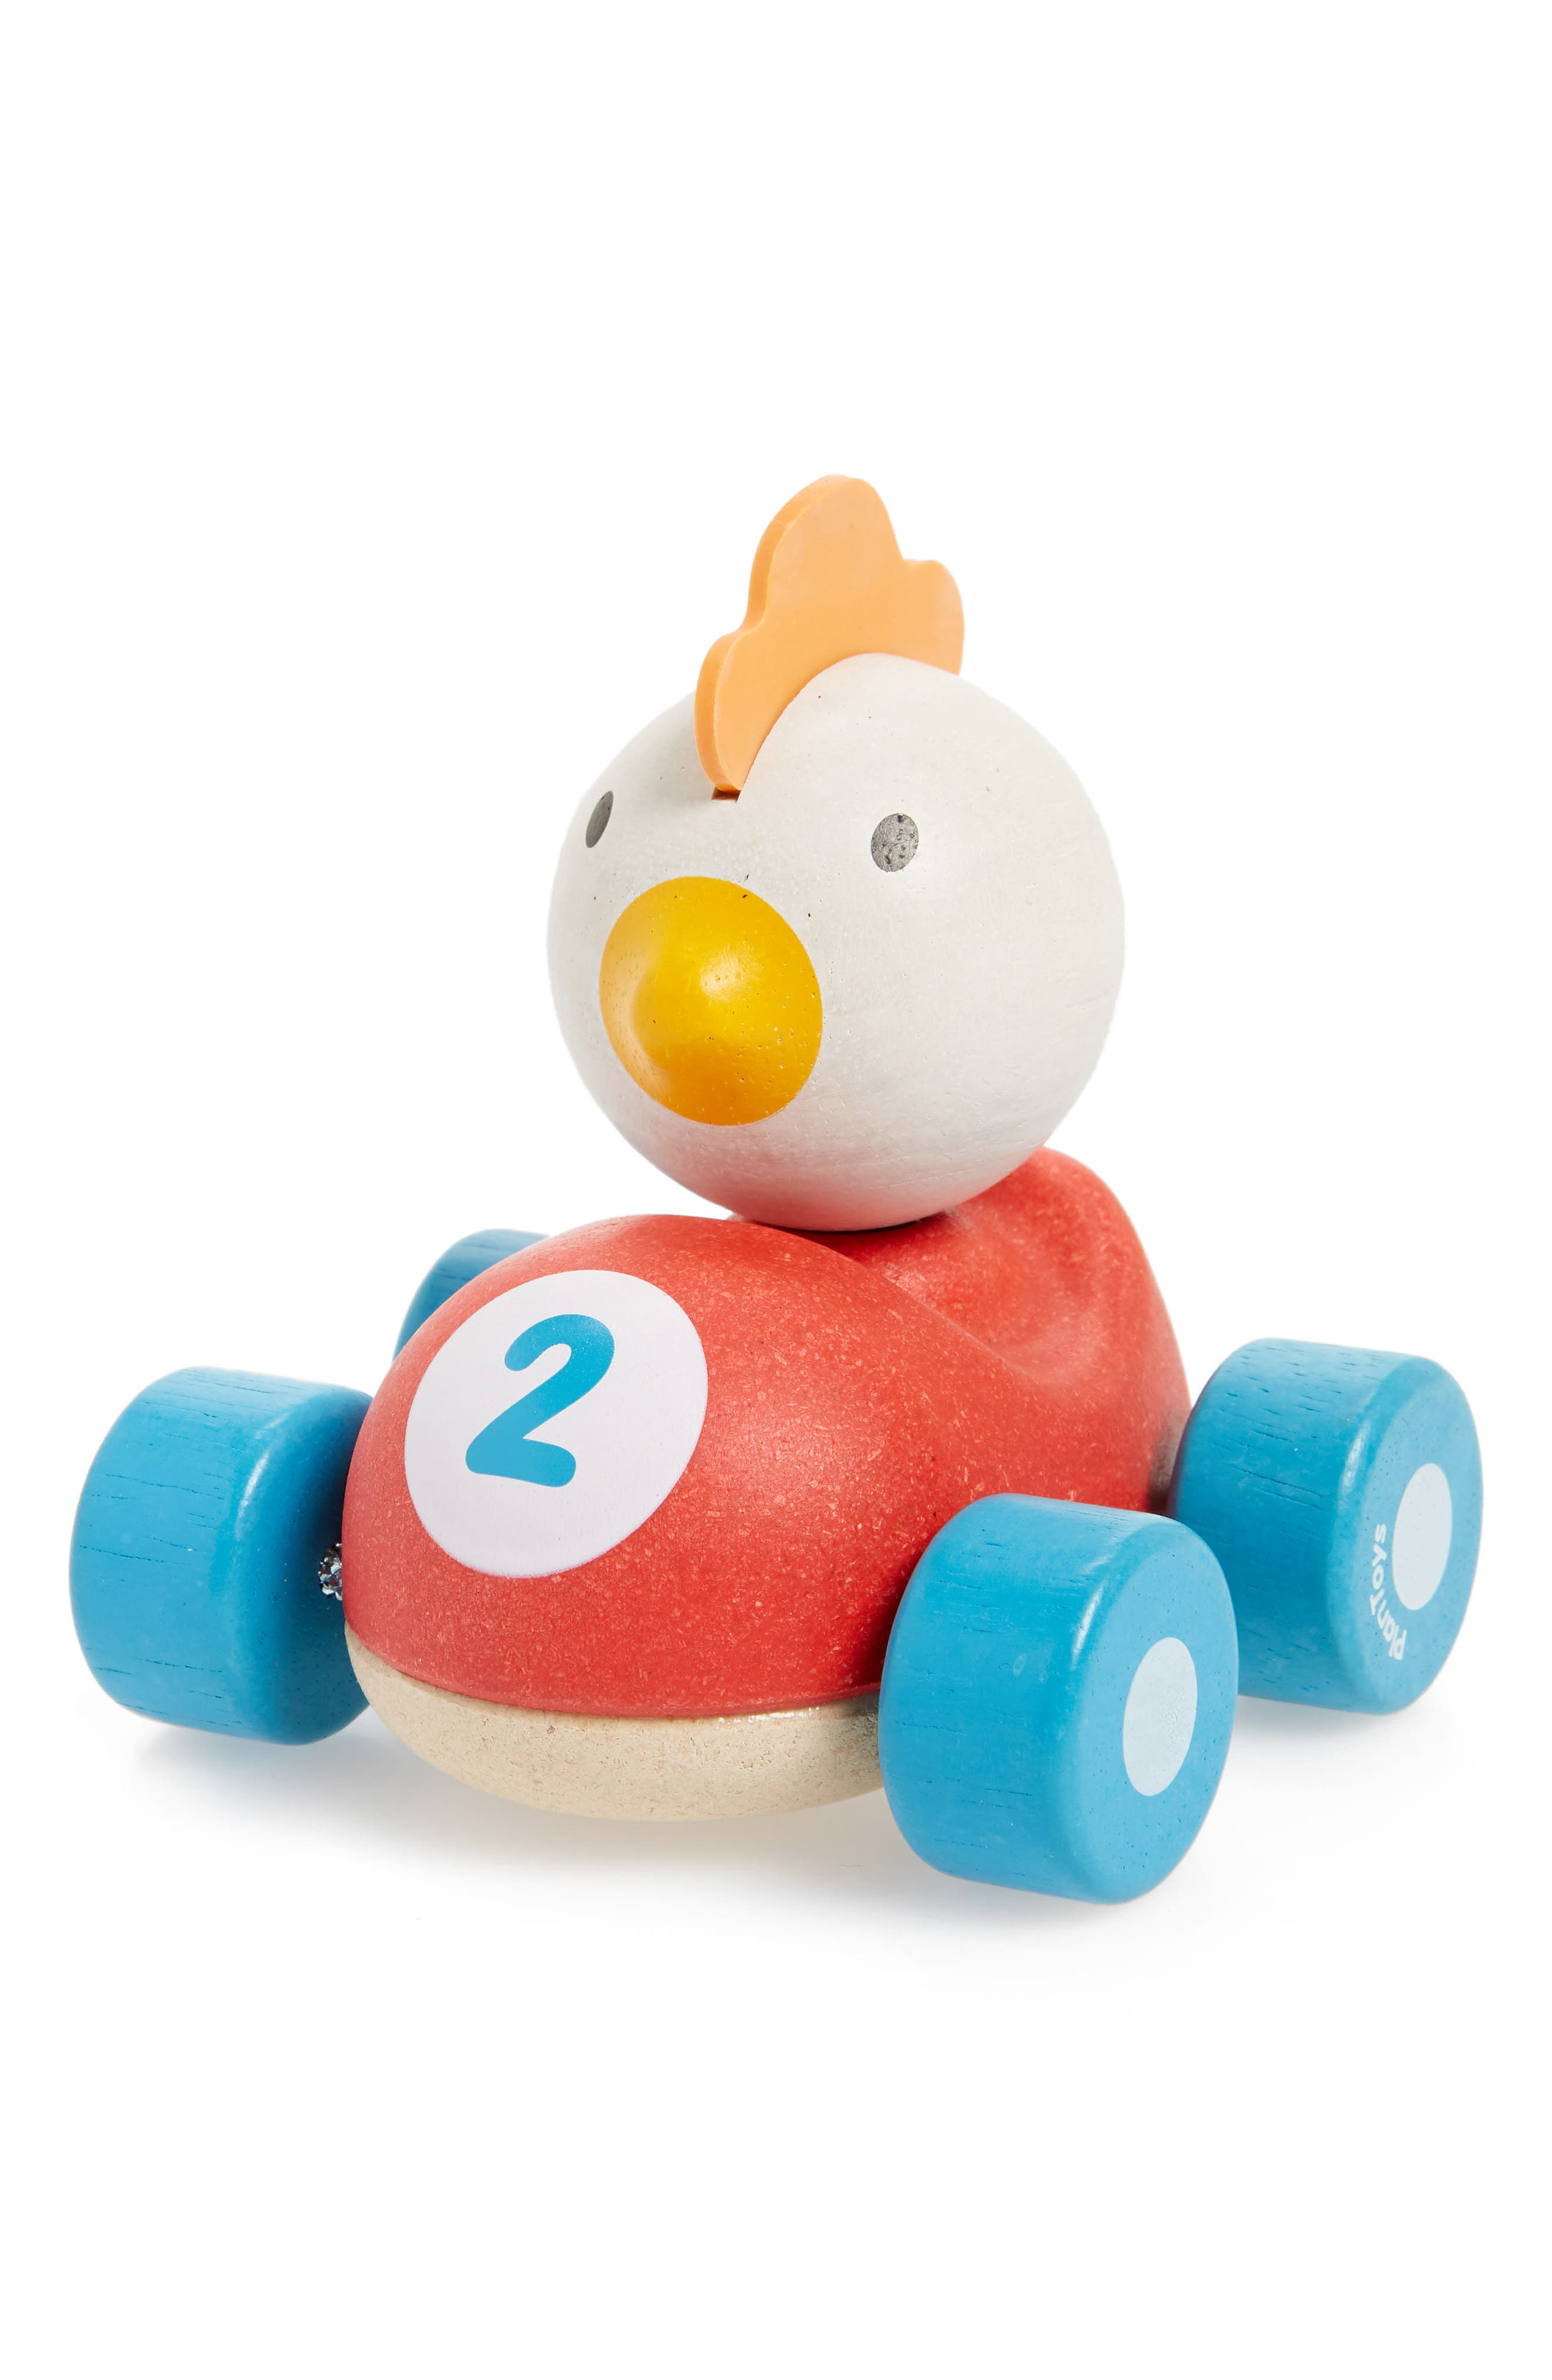 Plan Toys<sup>®</sup> Chicken Racer Rolling Toy,                             Main thumbnail 1, color,                             600